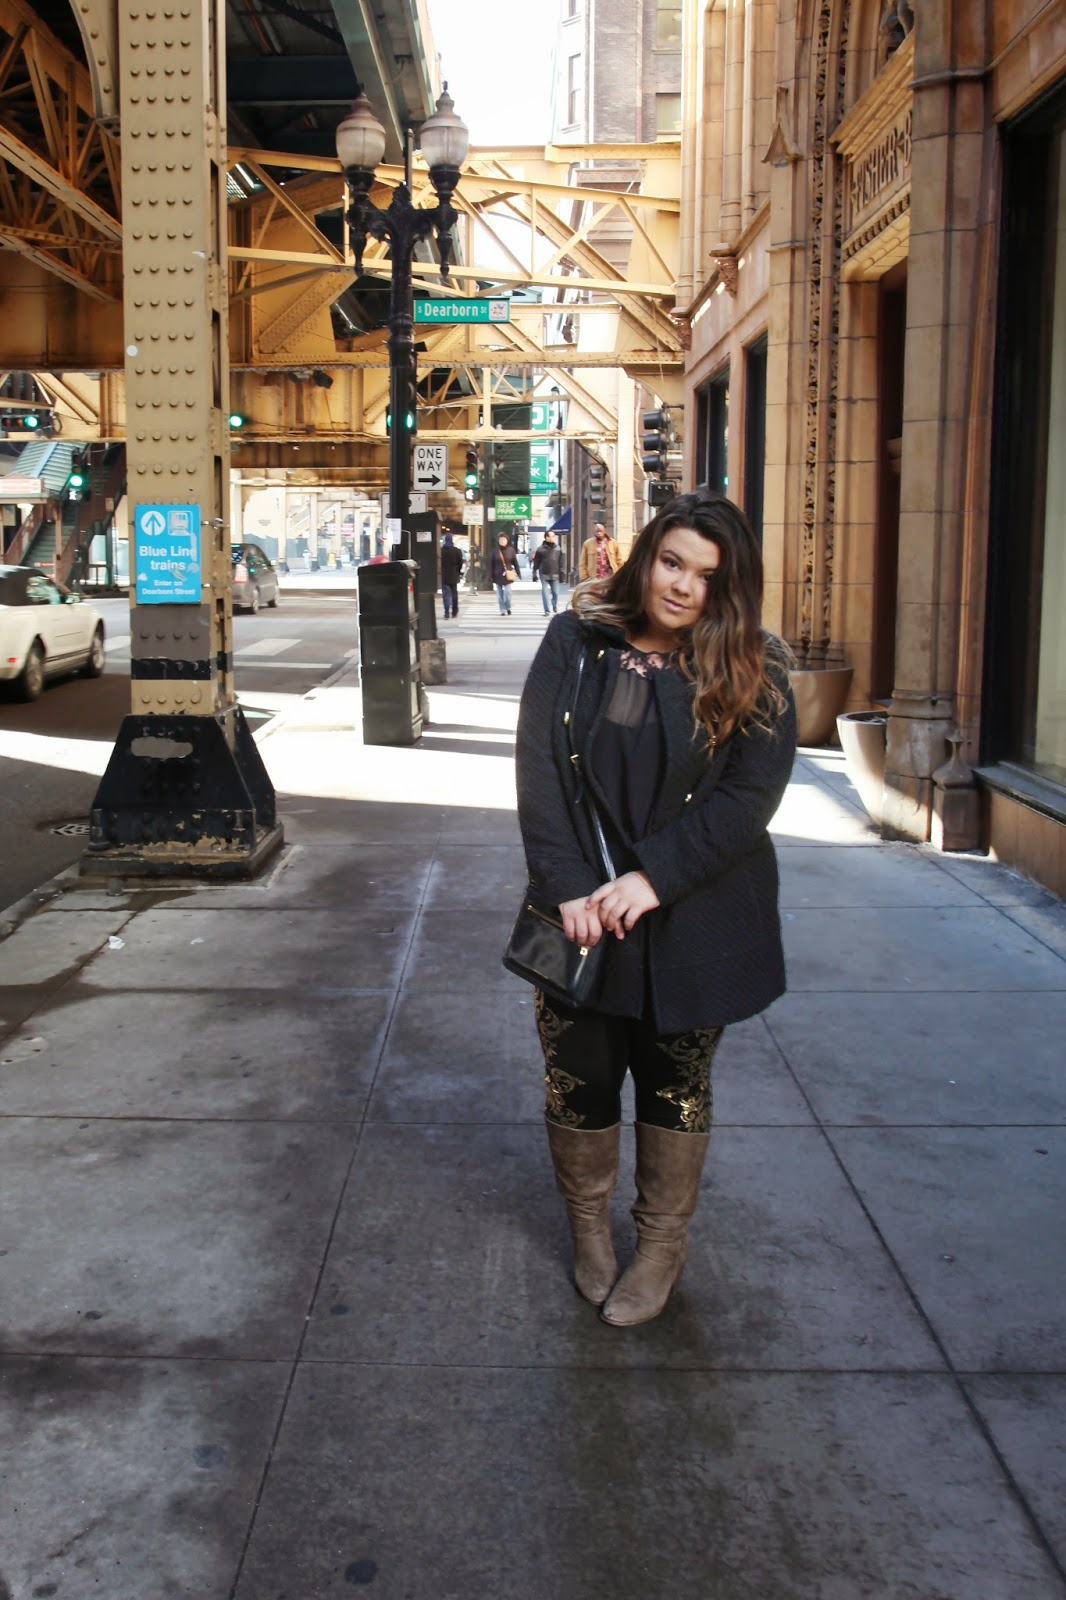 lauren by ralph lauren, gold embellished leggings, baby doll coat, a touch of glam, natalie in the city, chicago, fashion blogger, plus size fashion blogger, curvy fashionista, fashion, natalie craig, betsey johnson, forever 21 plus